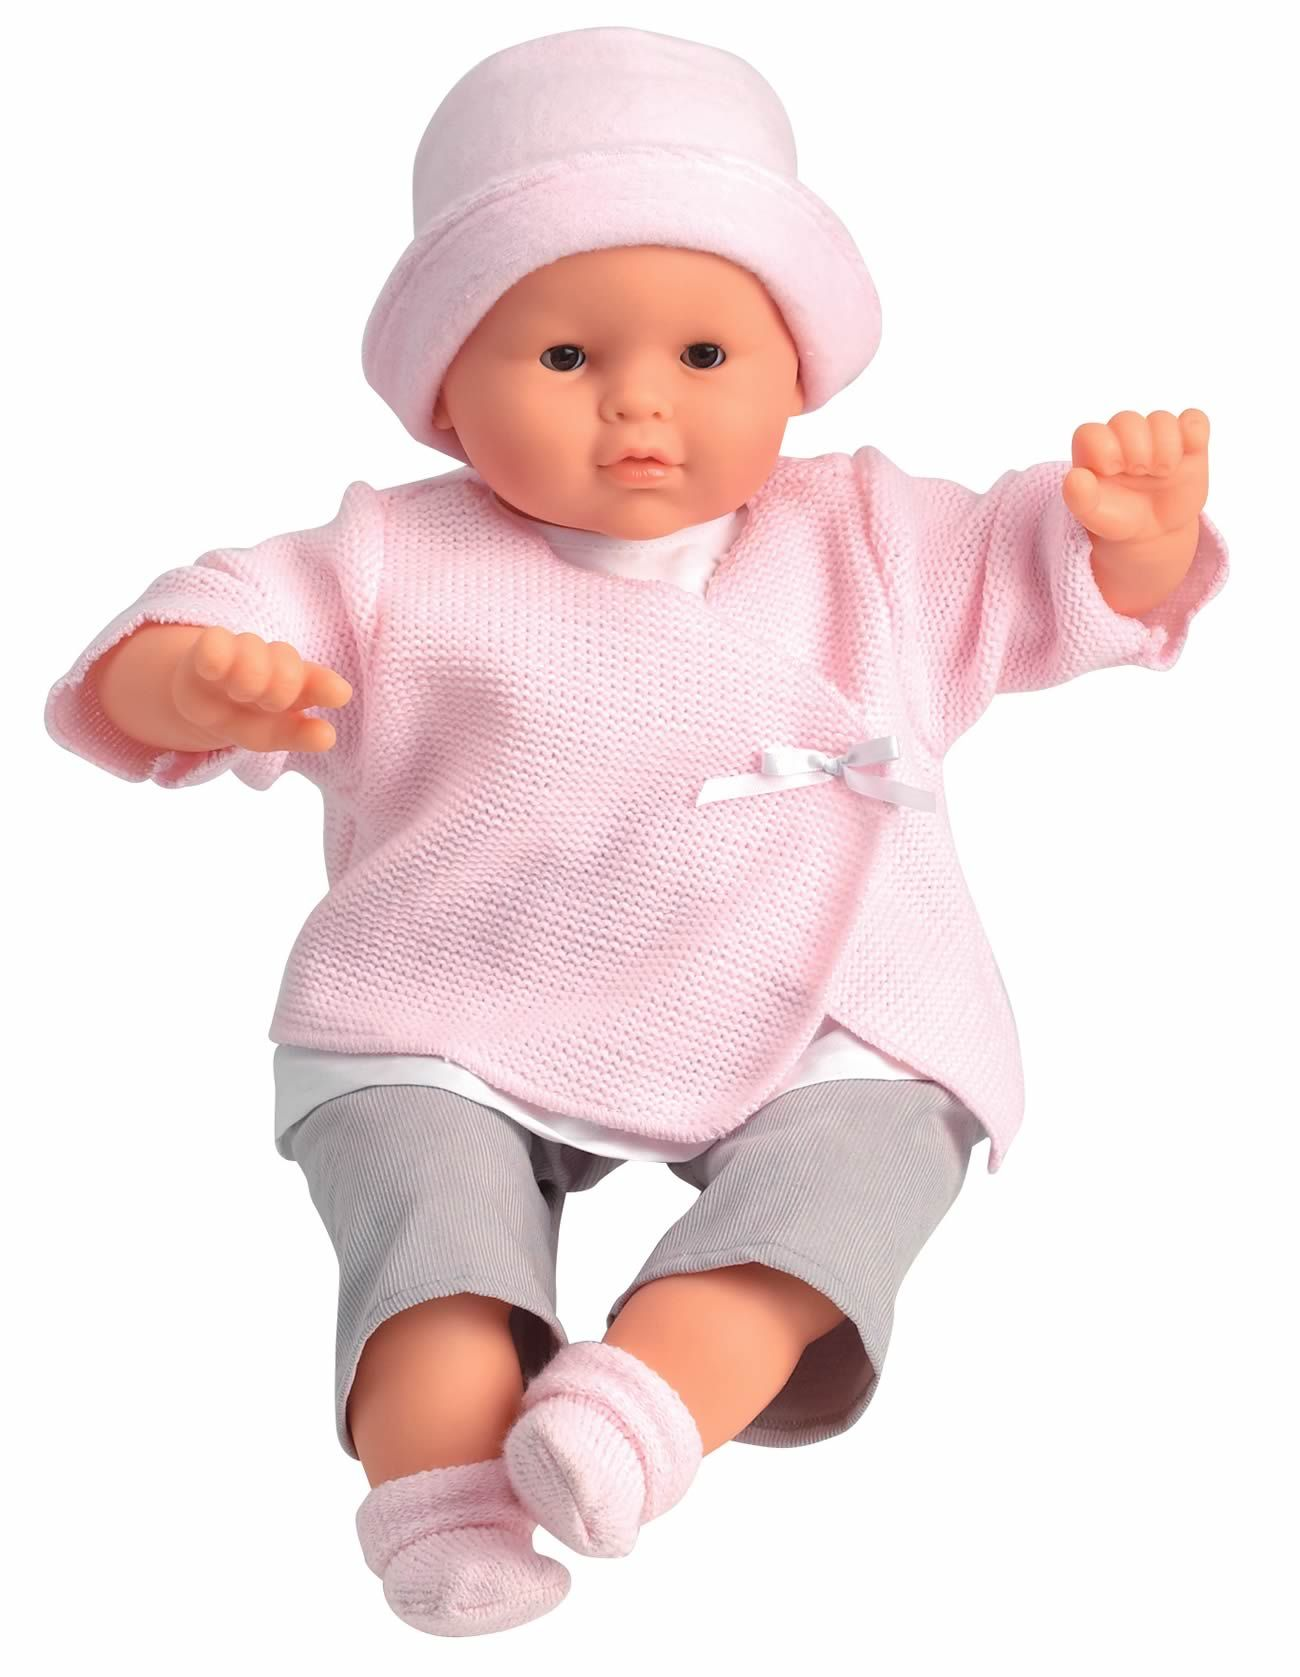 Bebe Amour Is A Life Size Baby Doll And Was One Of The Corolle